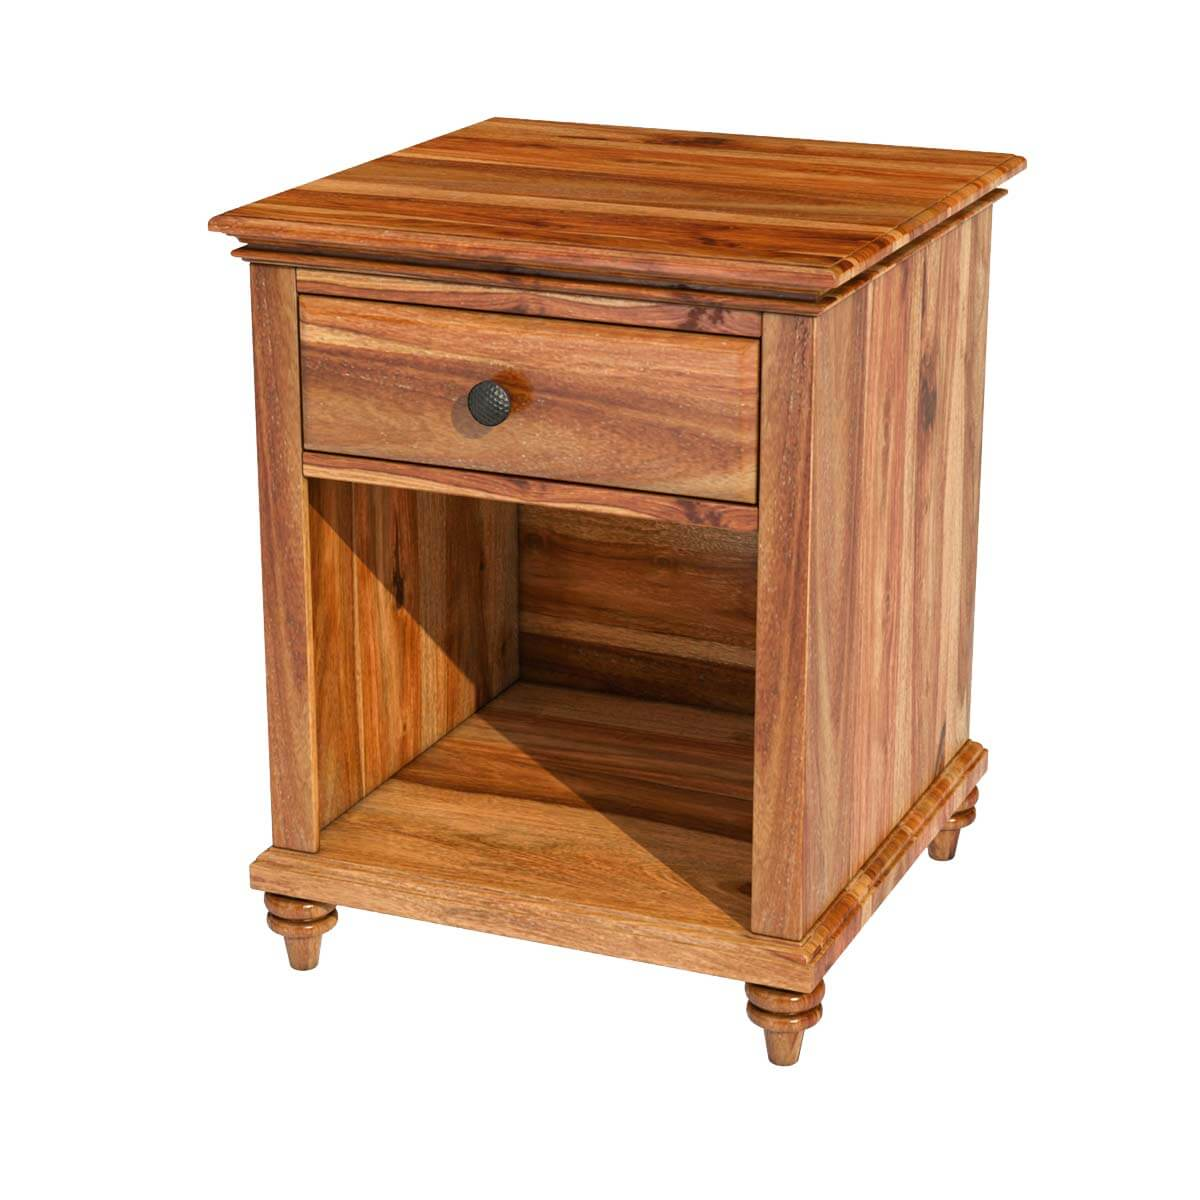 livingston solid wood nightstand end table cabinet bedroom tables hover zoom dining glass top replacement bare pine furniture decorating with brown leather coffee storage and